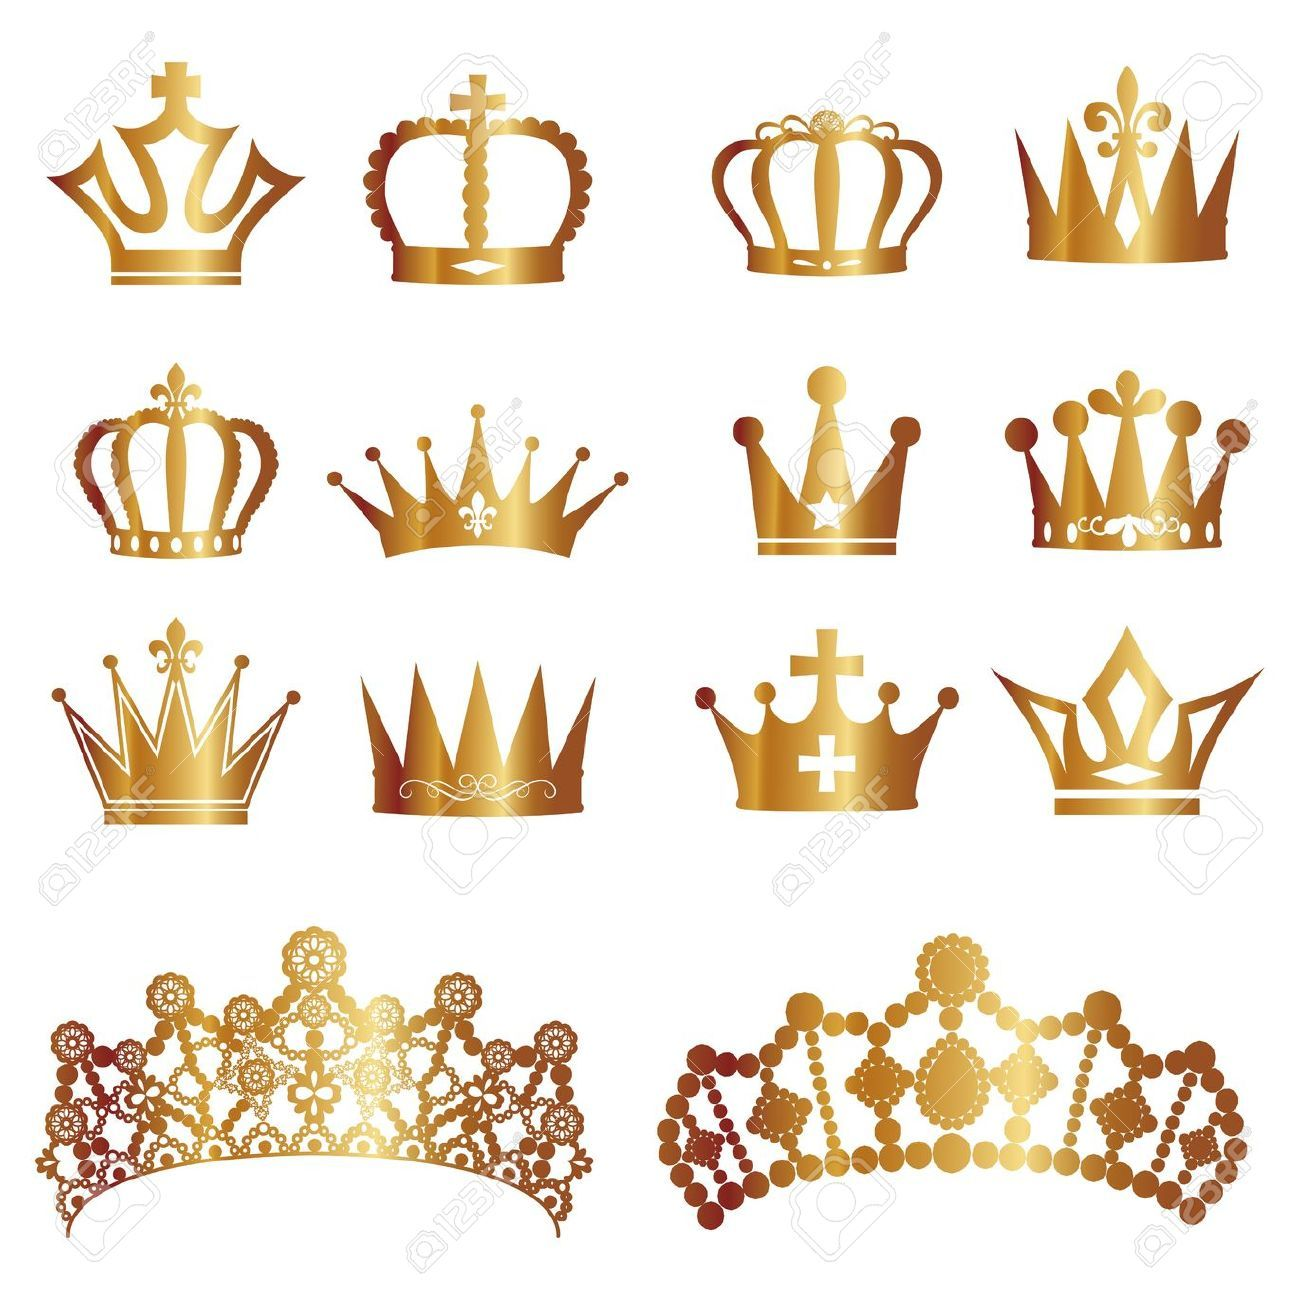 15+ Queen crown clipart free information